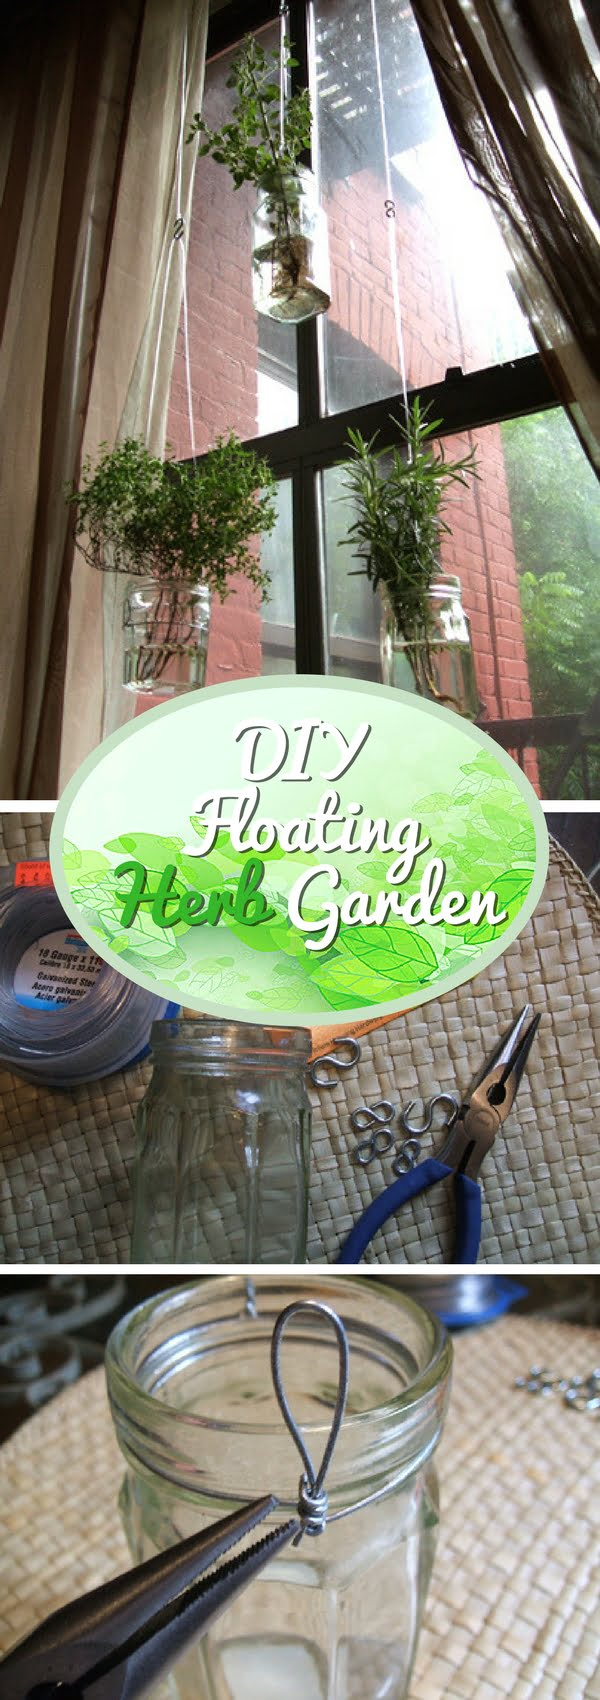 Check out how to make this DIY float herb garden